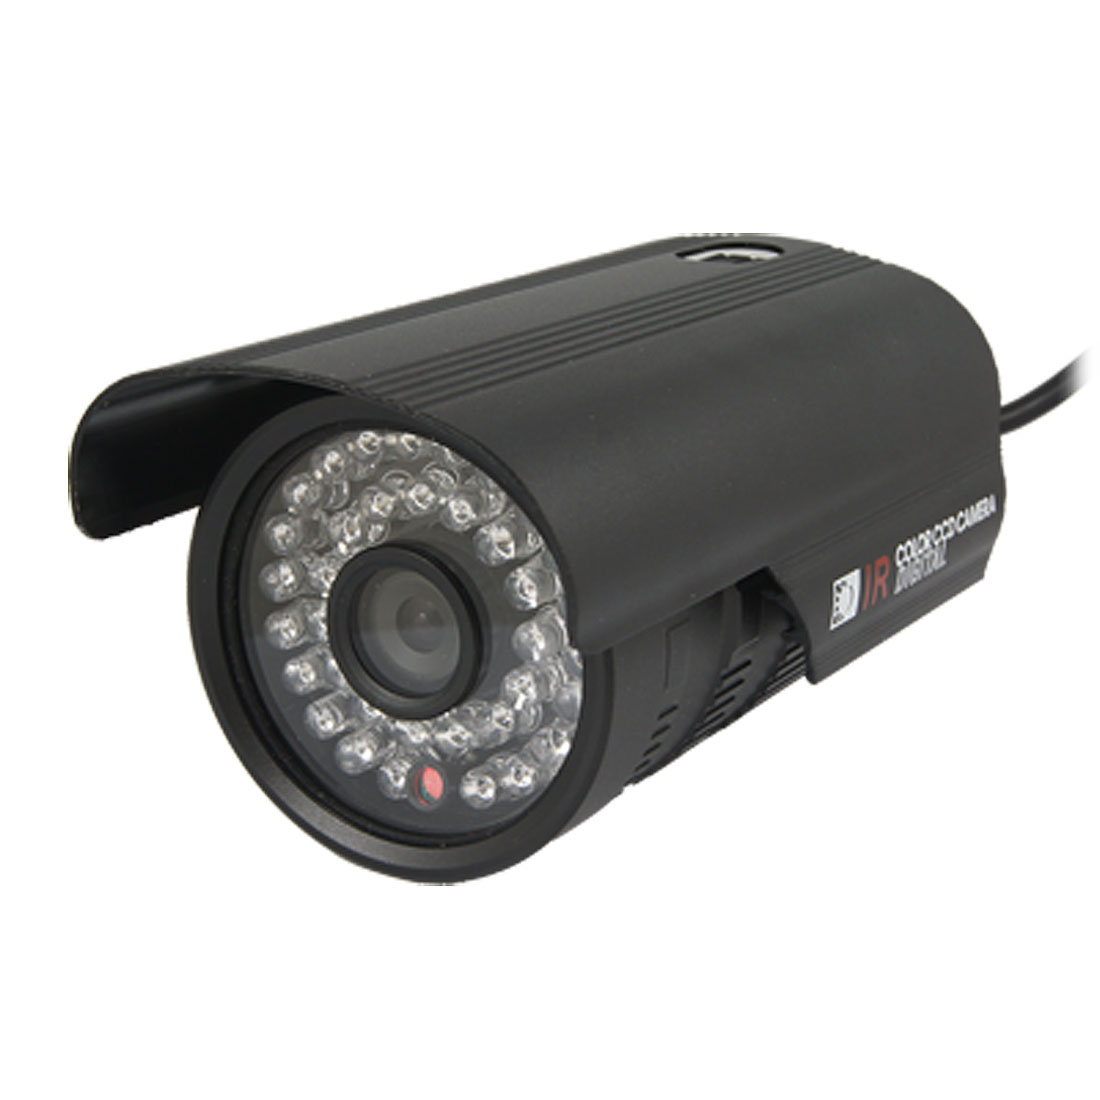 "EU Plug AC 110-240V 1/4"" Sharp CCD 36 IR LED 420TVL PAL Color Outdoor CCTV Security Camera 6mm Lens"